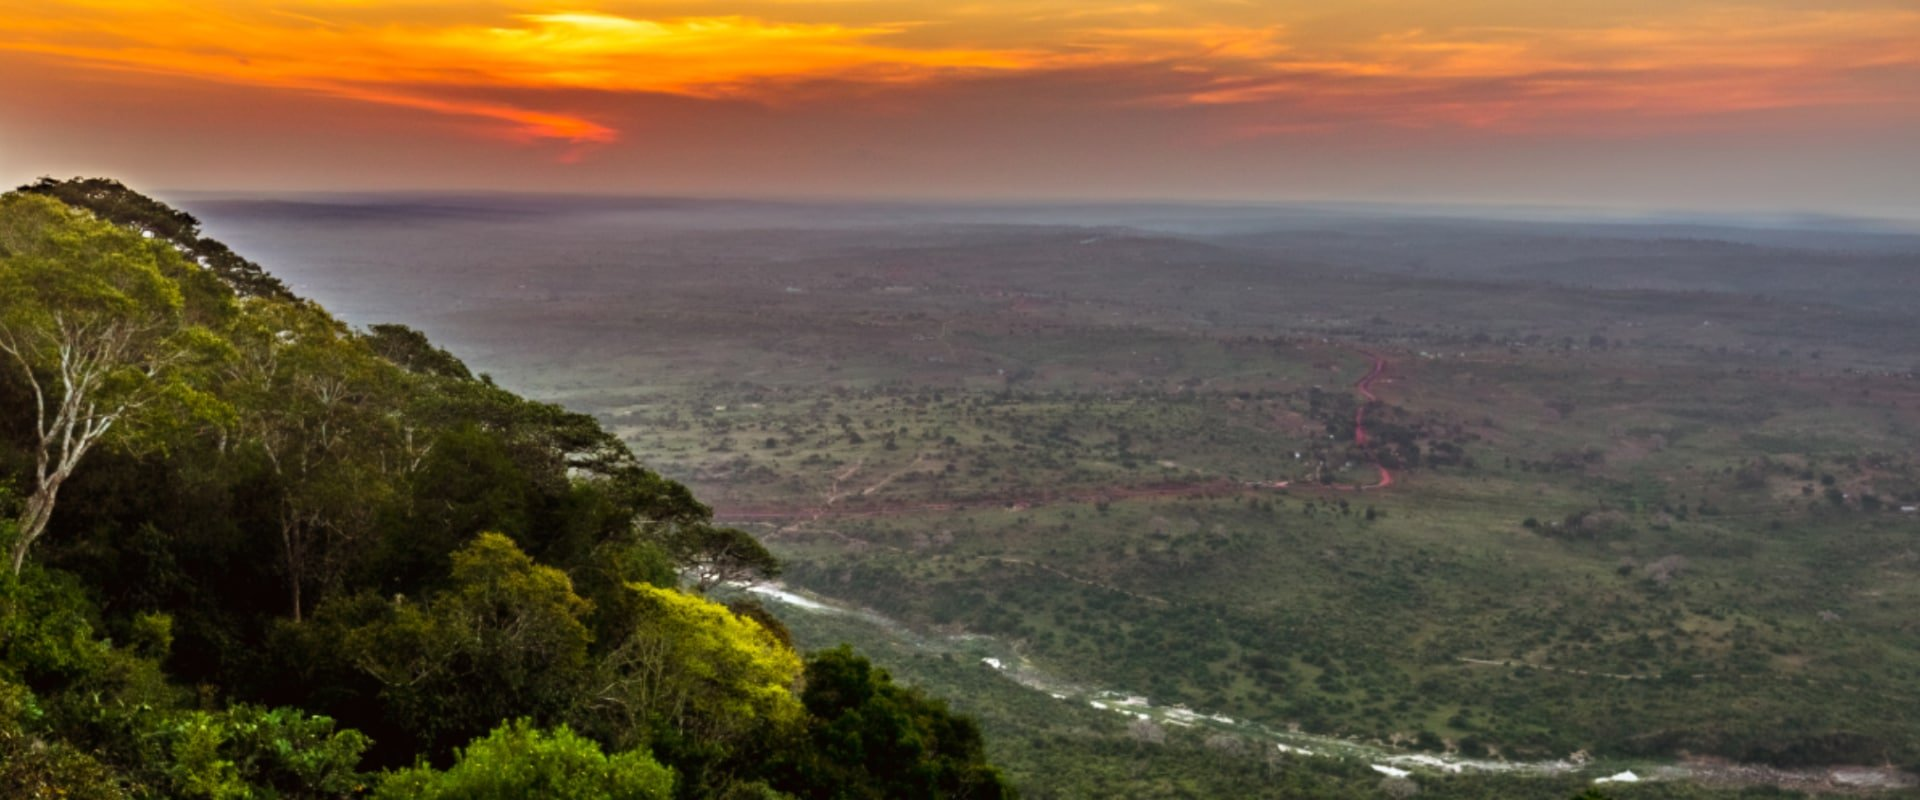 Immerse yourself in a day safari to Shimba Hills